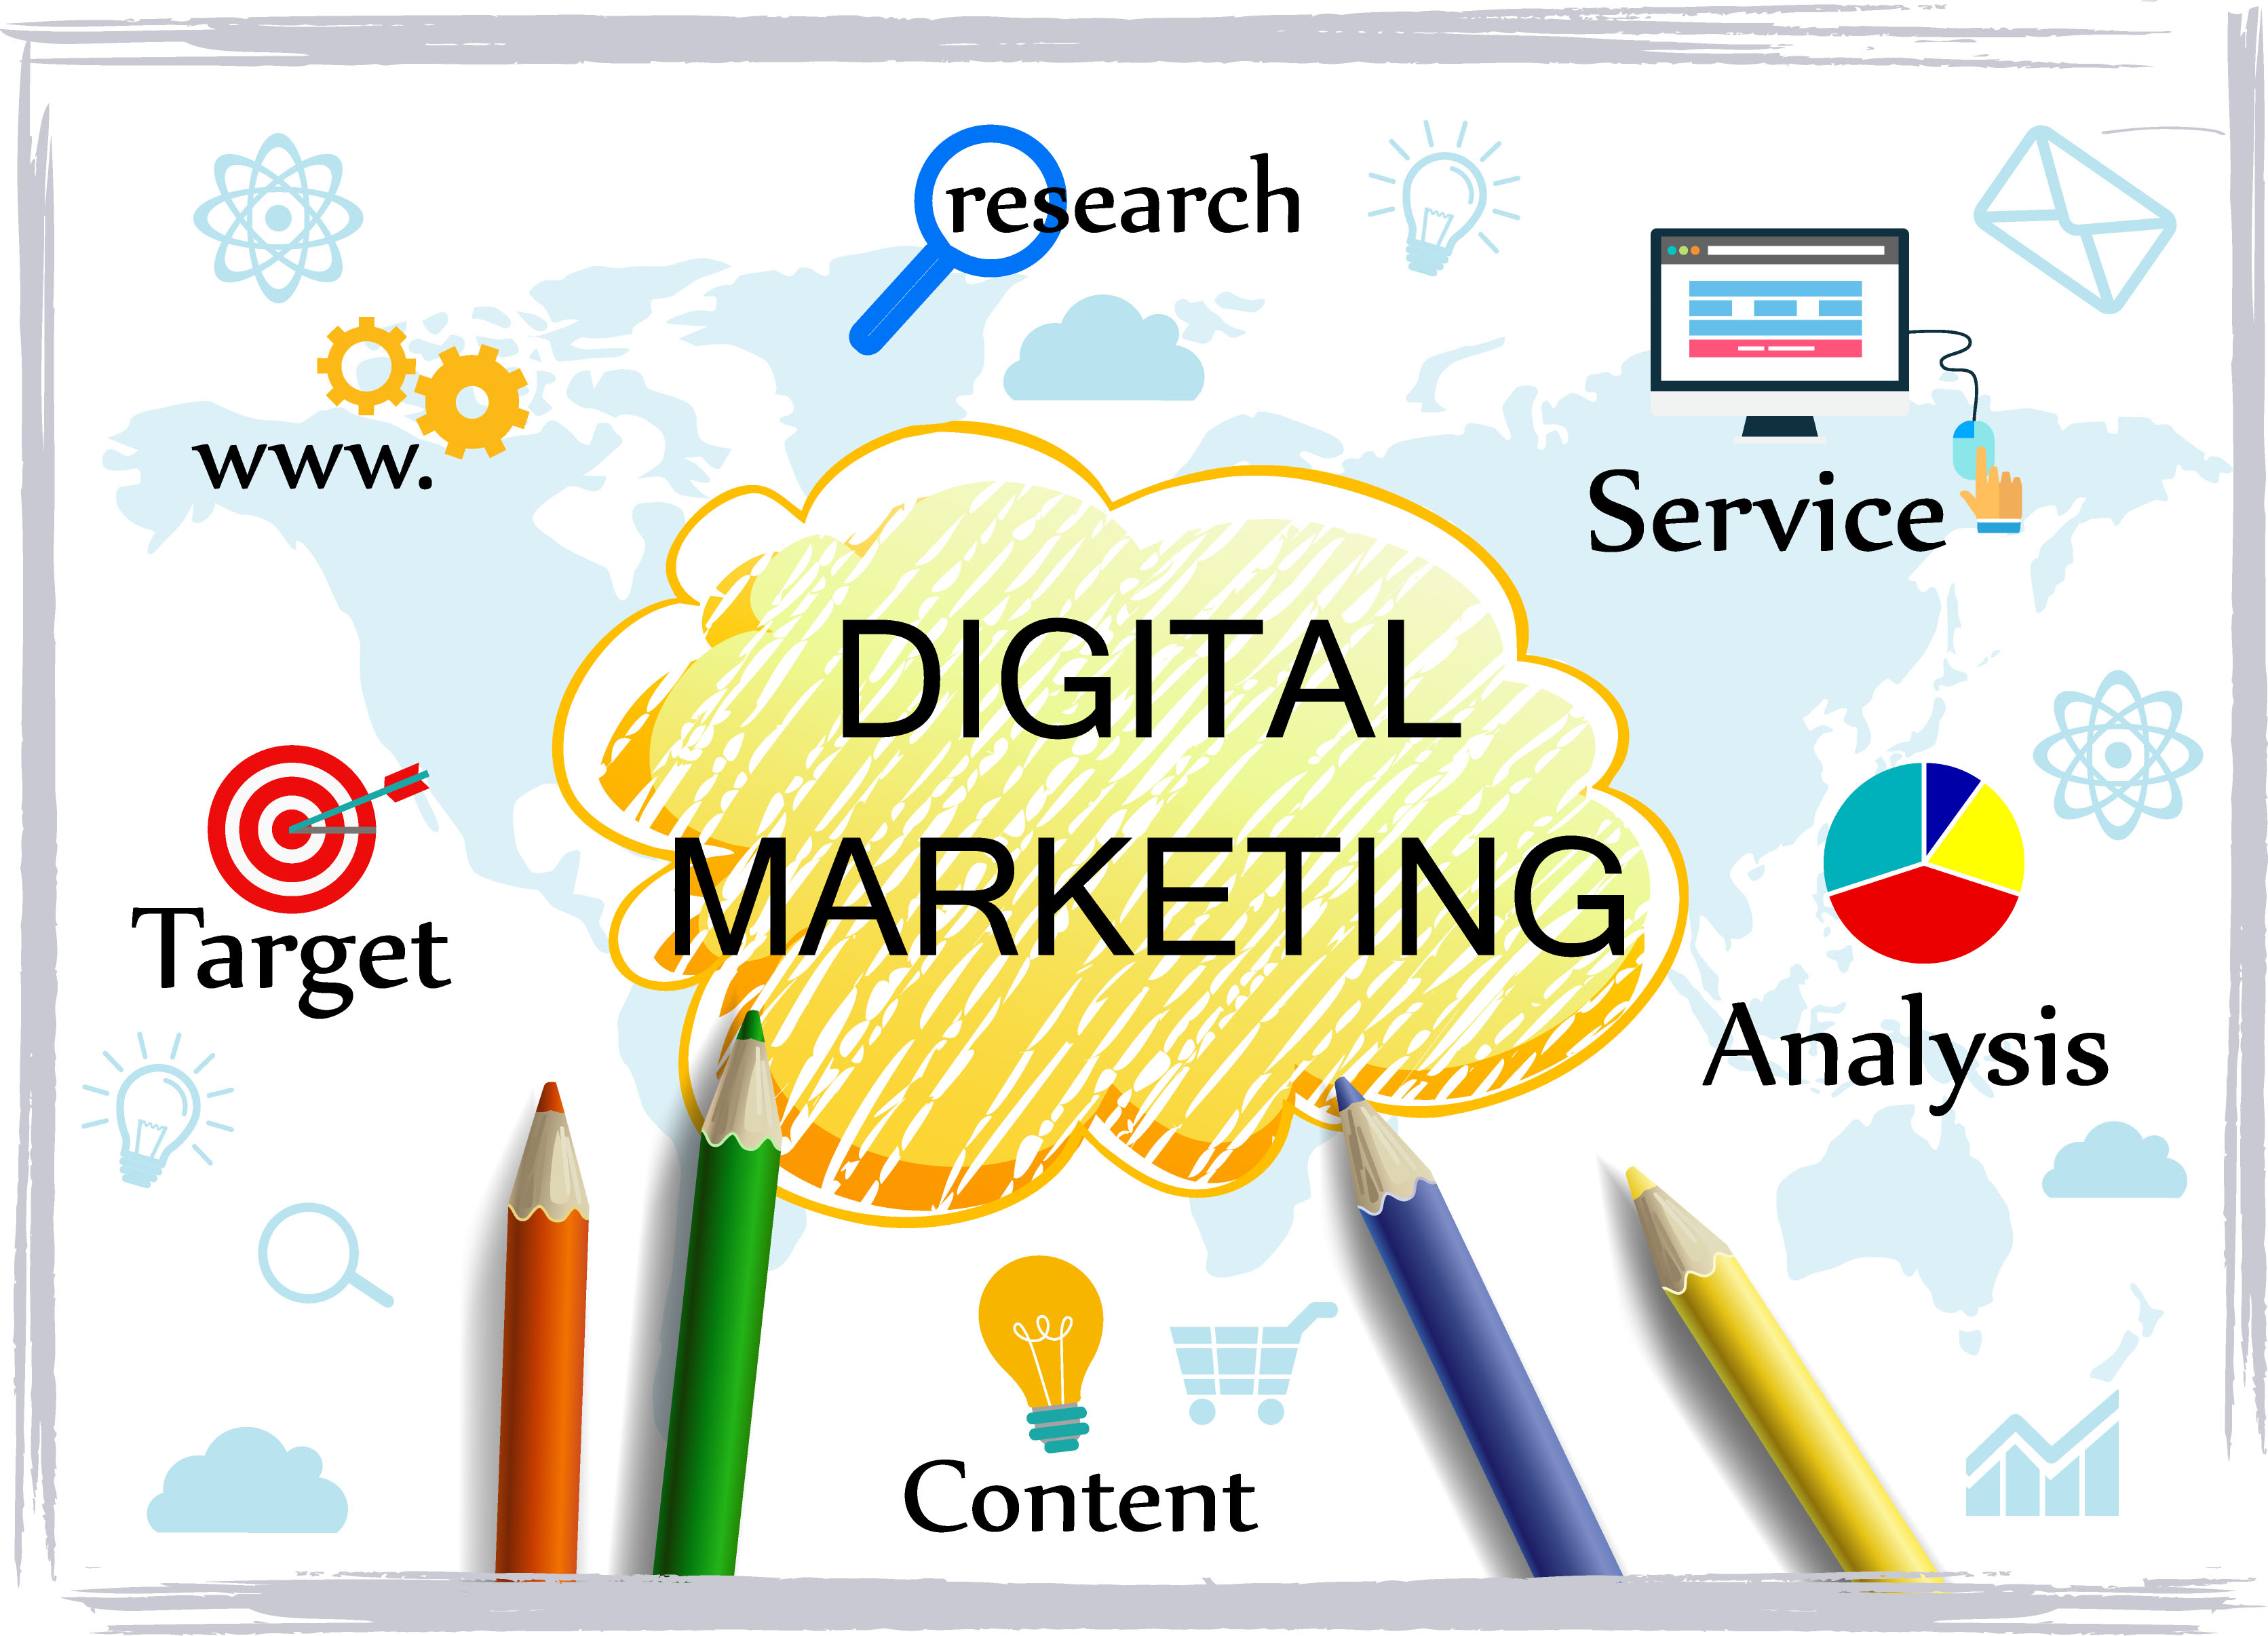 Startups face many challenges in building up a reputation for themselves in the market. Let's Talk Digital Marketing - CIATEC Digital Marketing ...